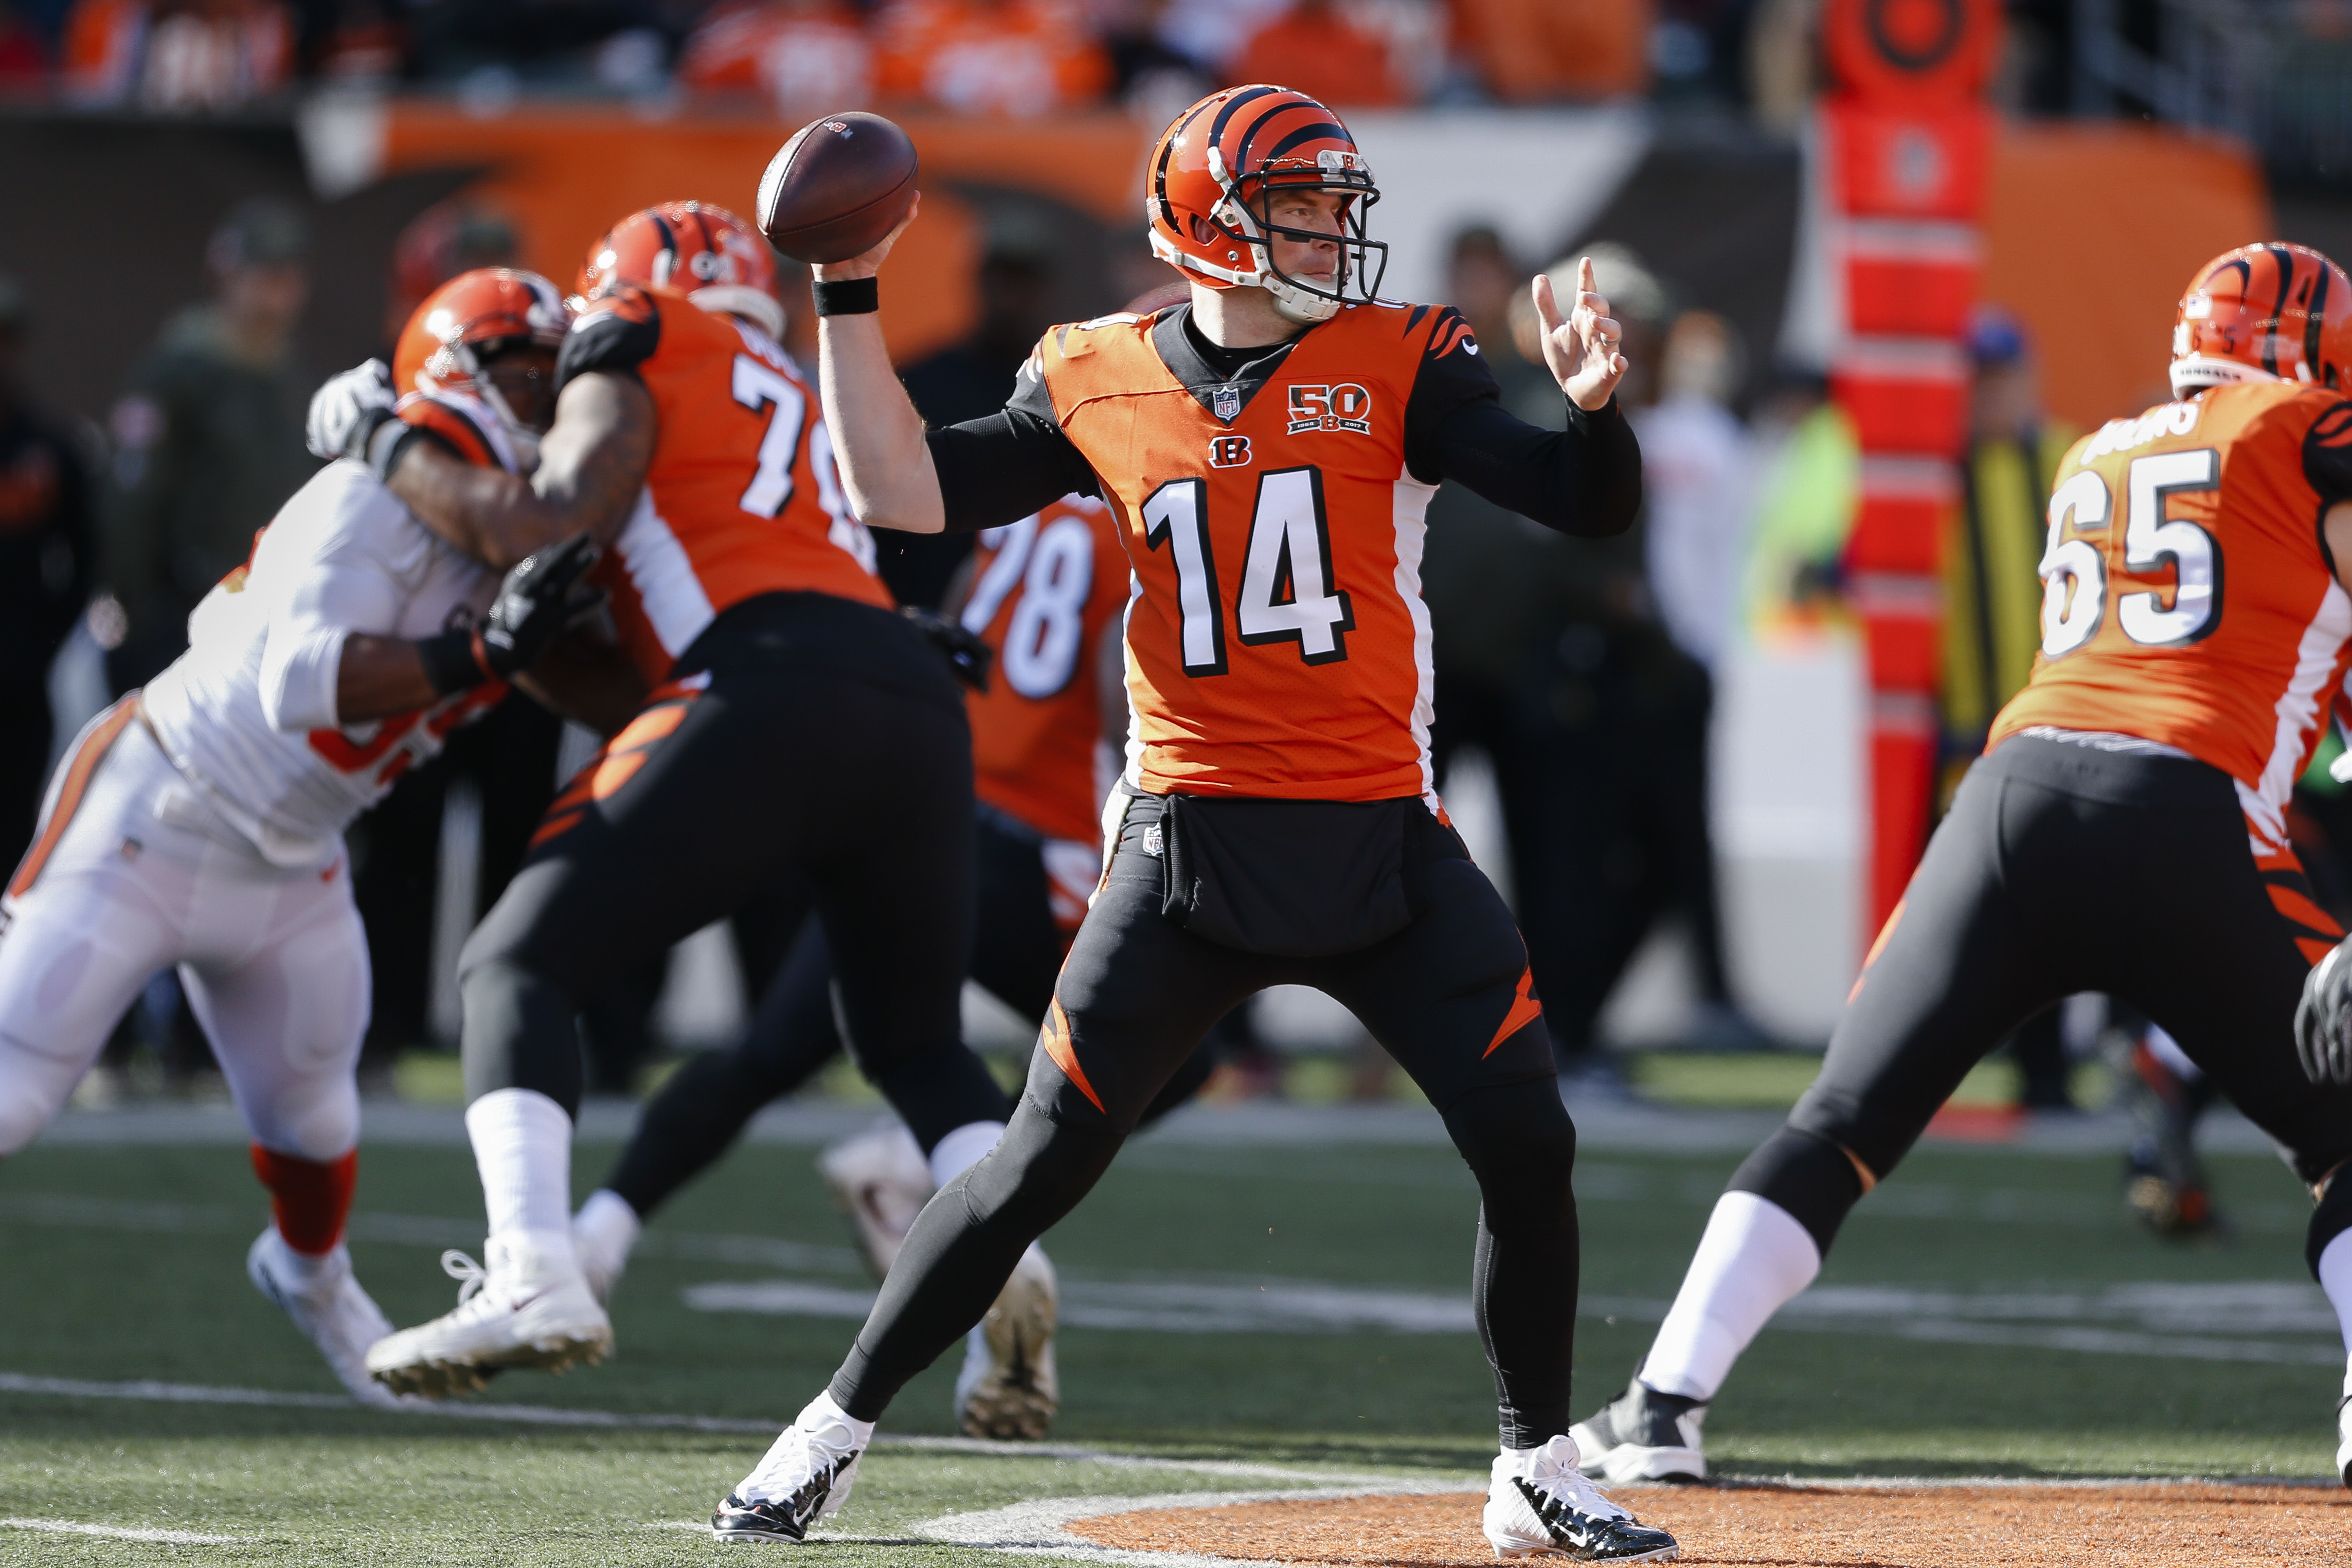 Cincinnati Bengals quarterback Andy Dalton passes in the first half of an NFL football game against the Cleveland Browns, Sunday, Nov. 26, 2017, in Cincinnati. (AP Photo/Gary Landers)